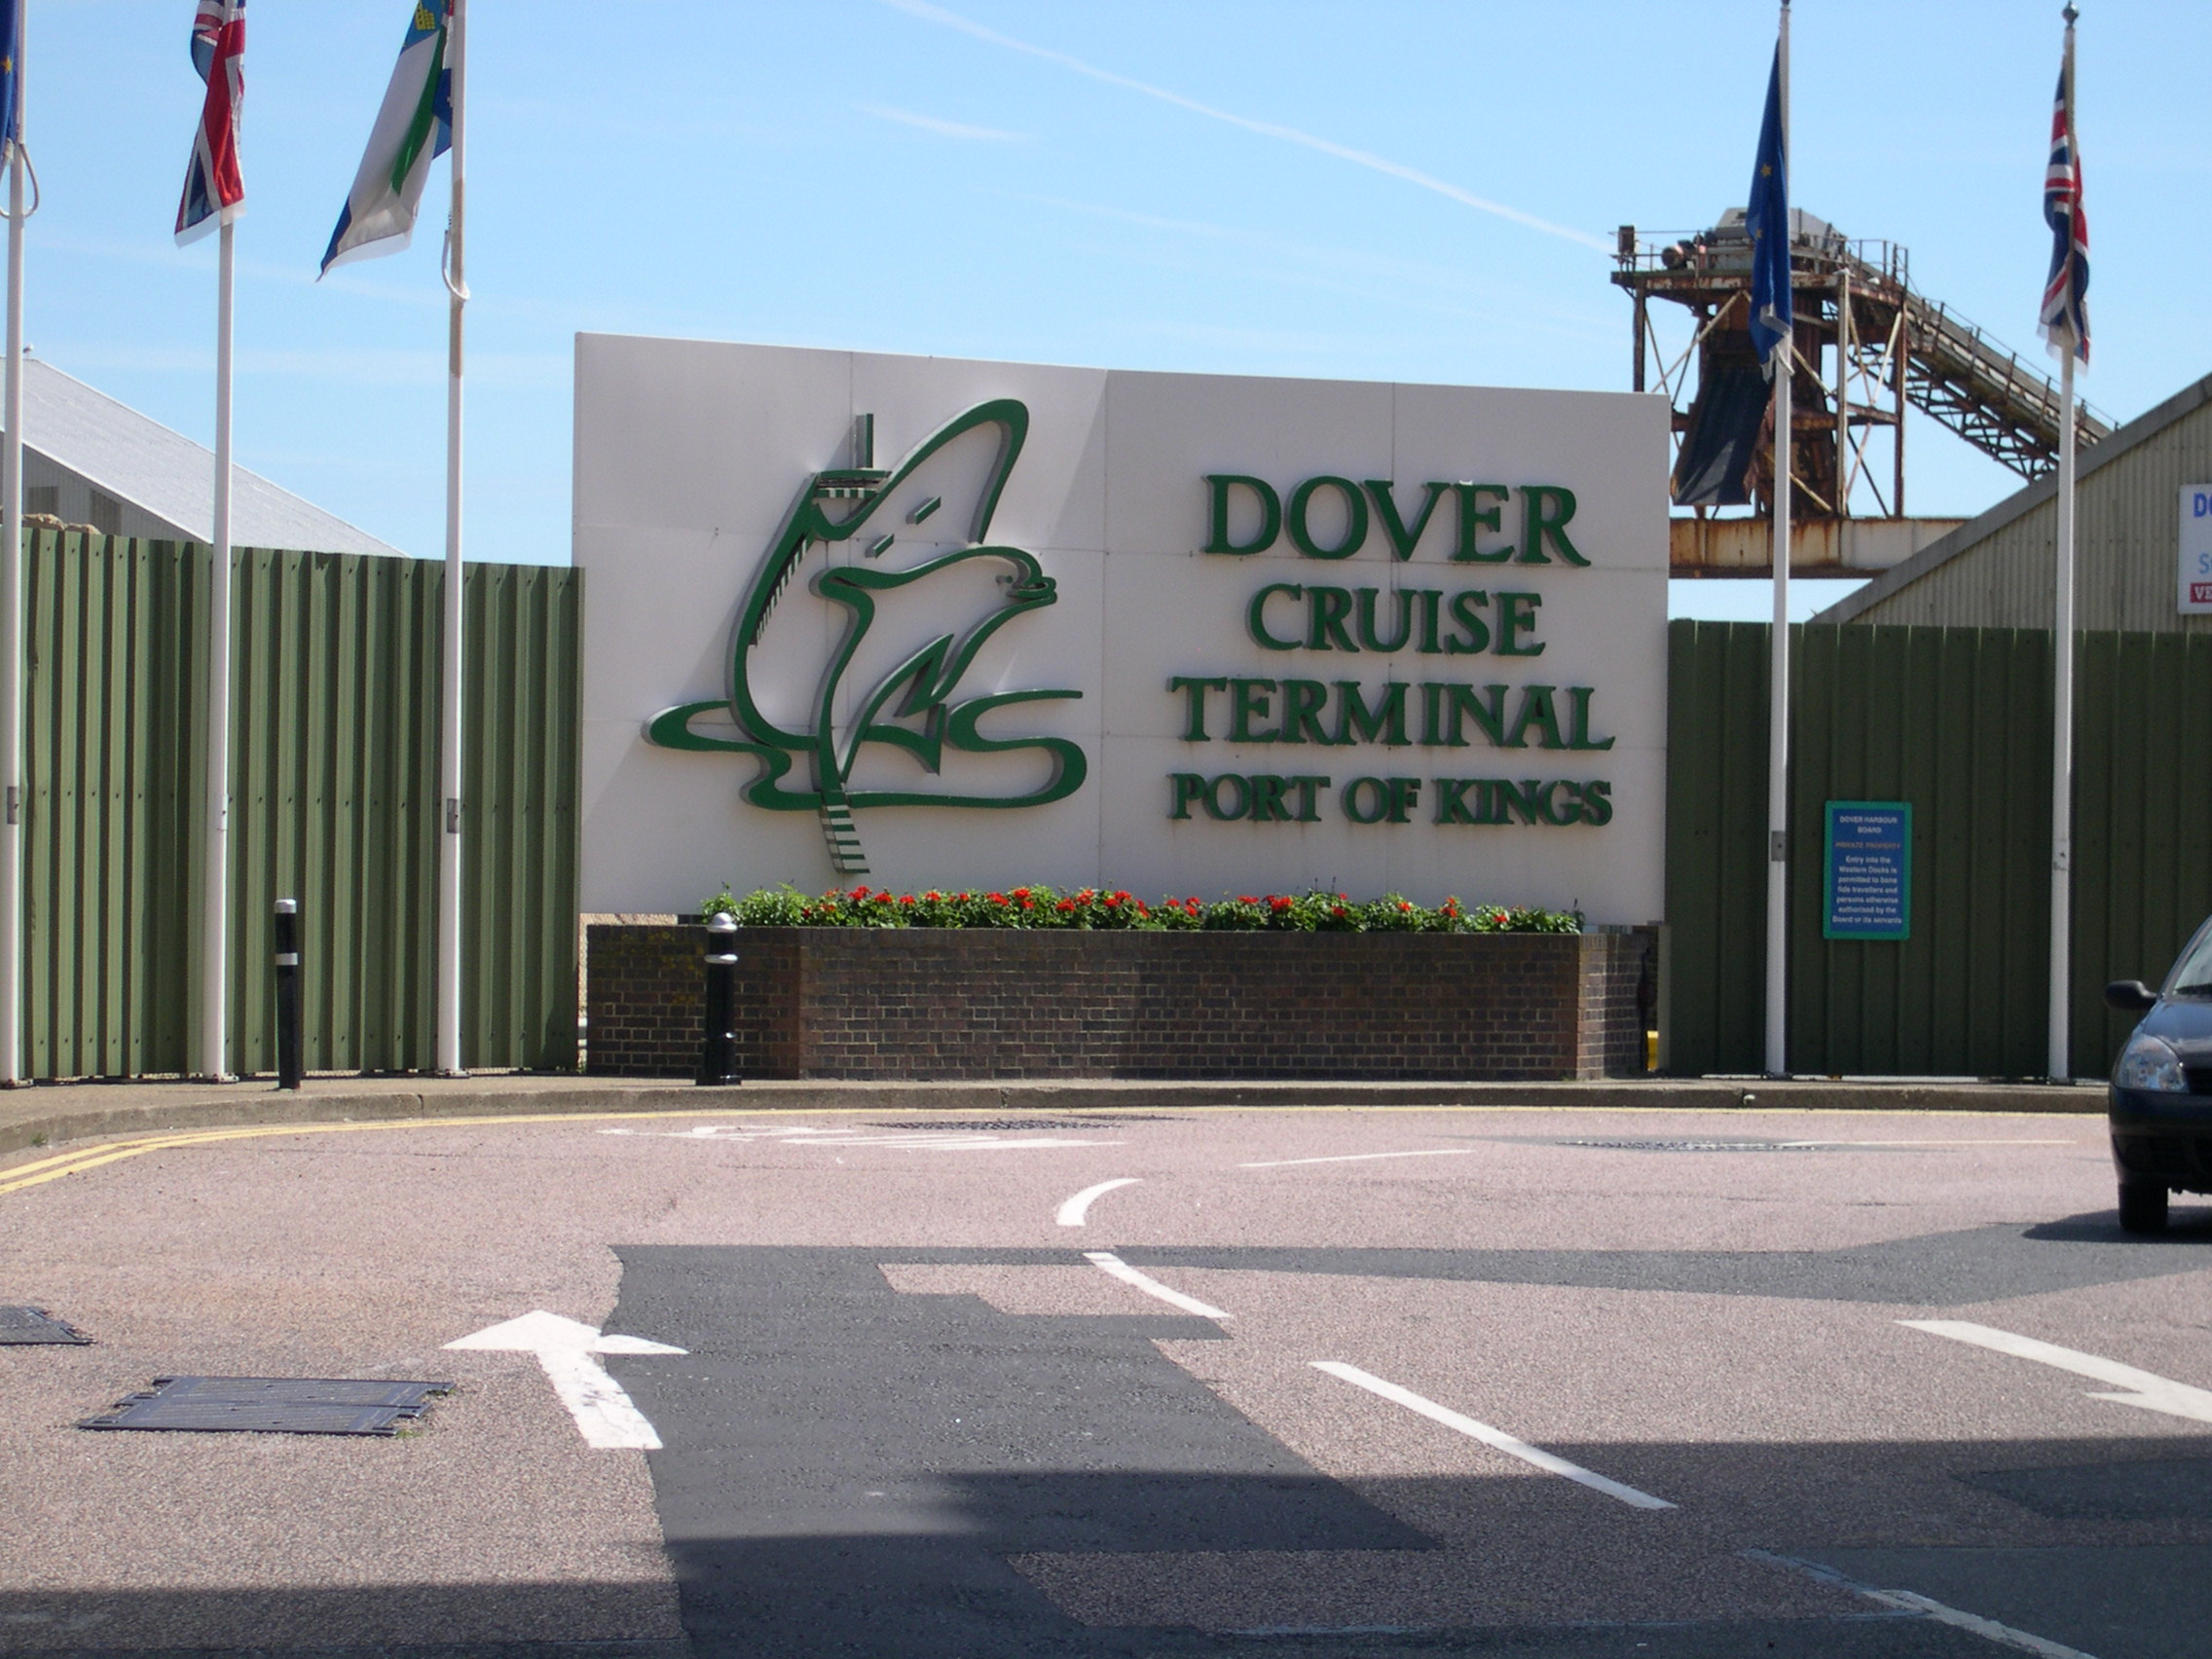 Dover Cruise Port to Heathrow Transfer Service, Dover to Heathrow Travel